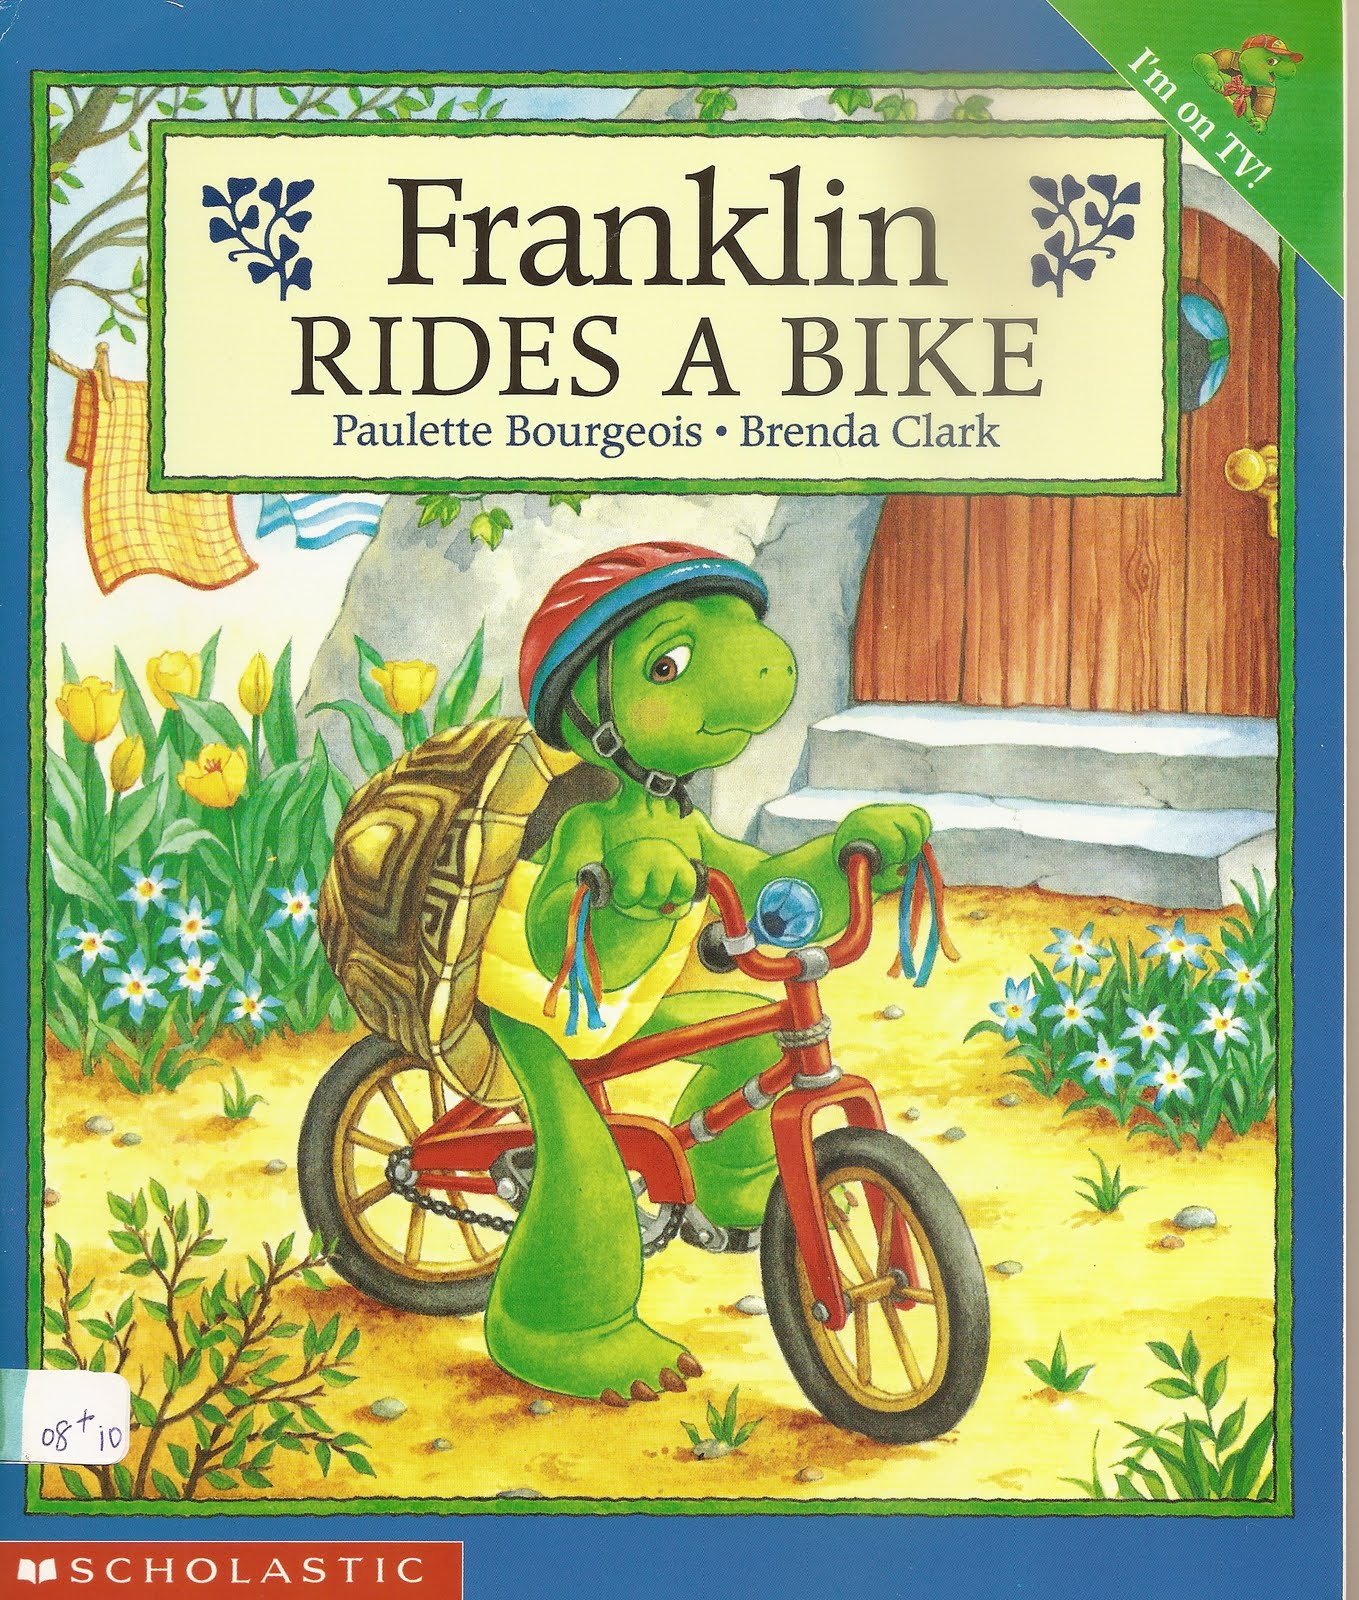 The Franklin Cover Up Book : Books and bikes dandyhorse magazine available in the